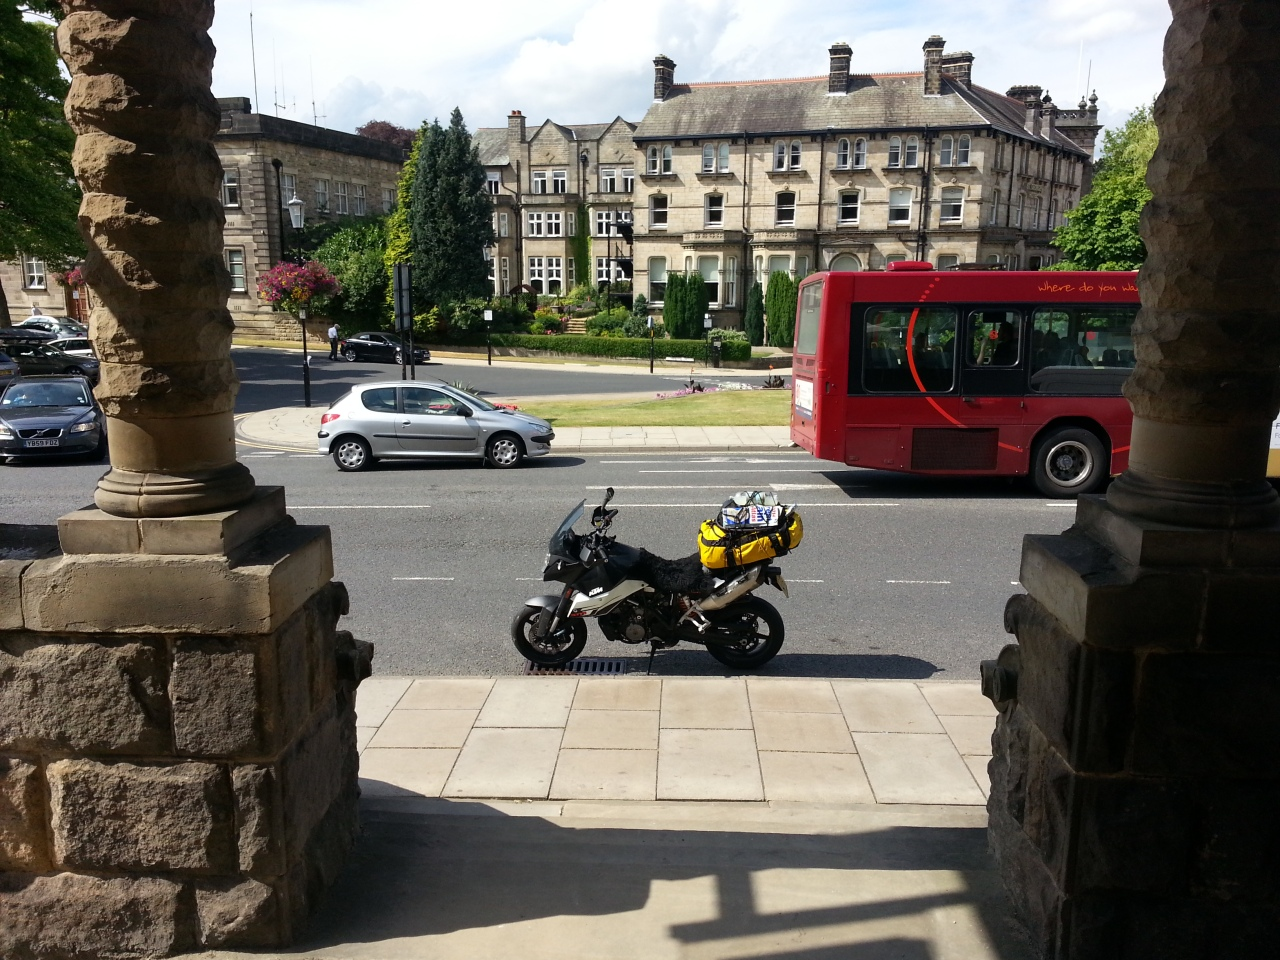 Harrogate ... outside the famous Spa... or is it a Chinese restaurant... ?